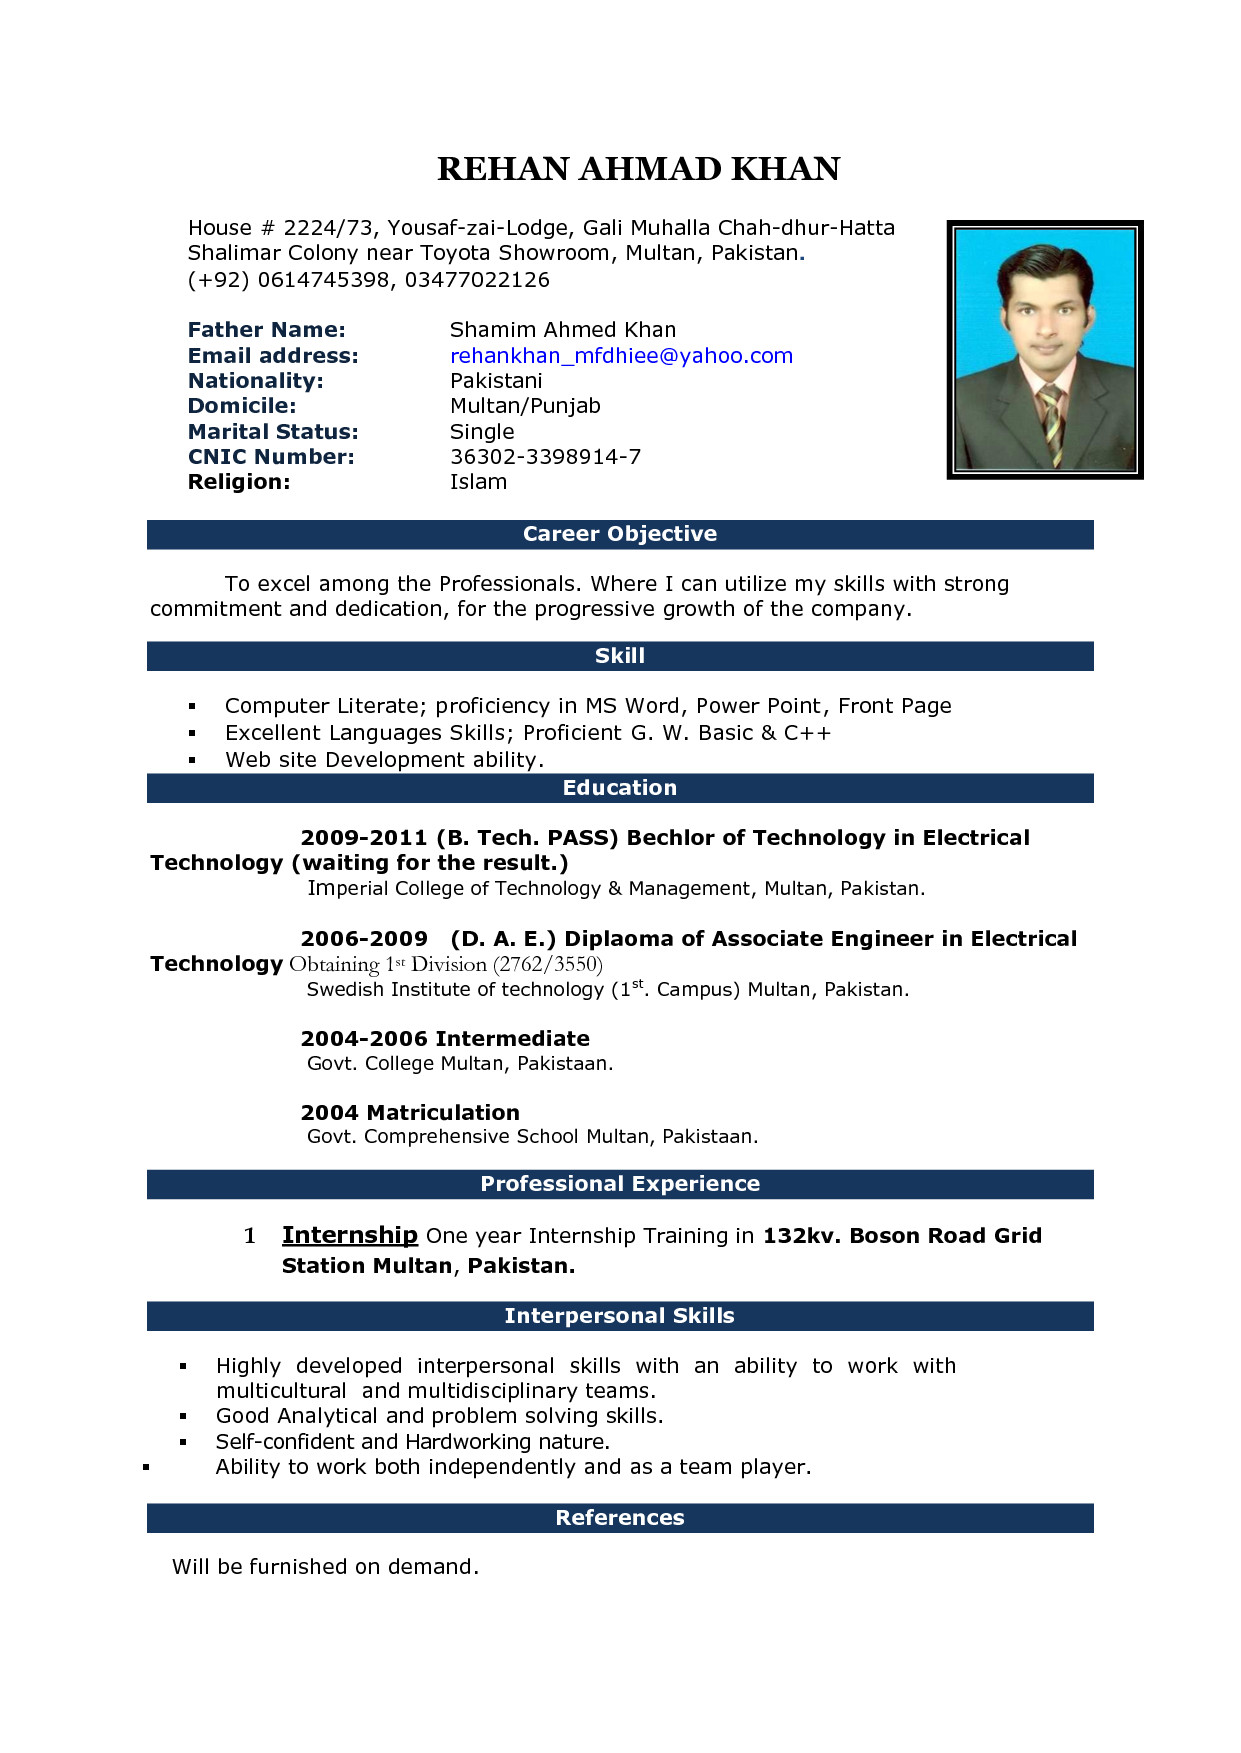 Resume Template Ms Word 2007 Image Result for Cv format In Ms Word 2007 Free